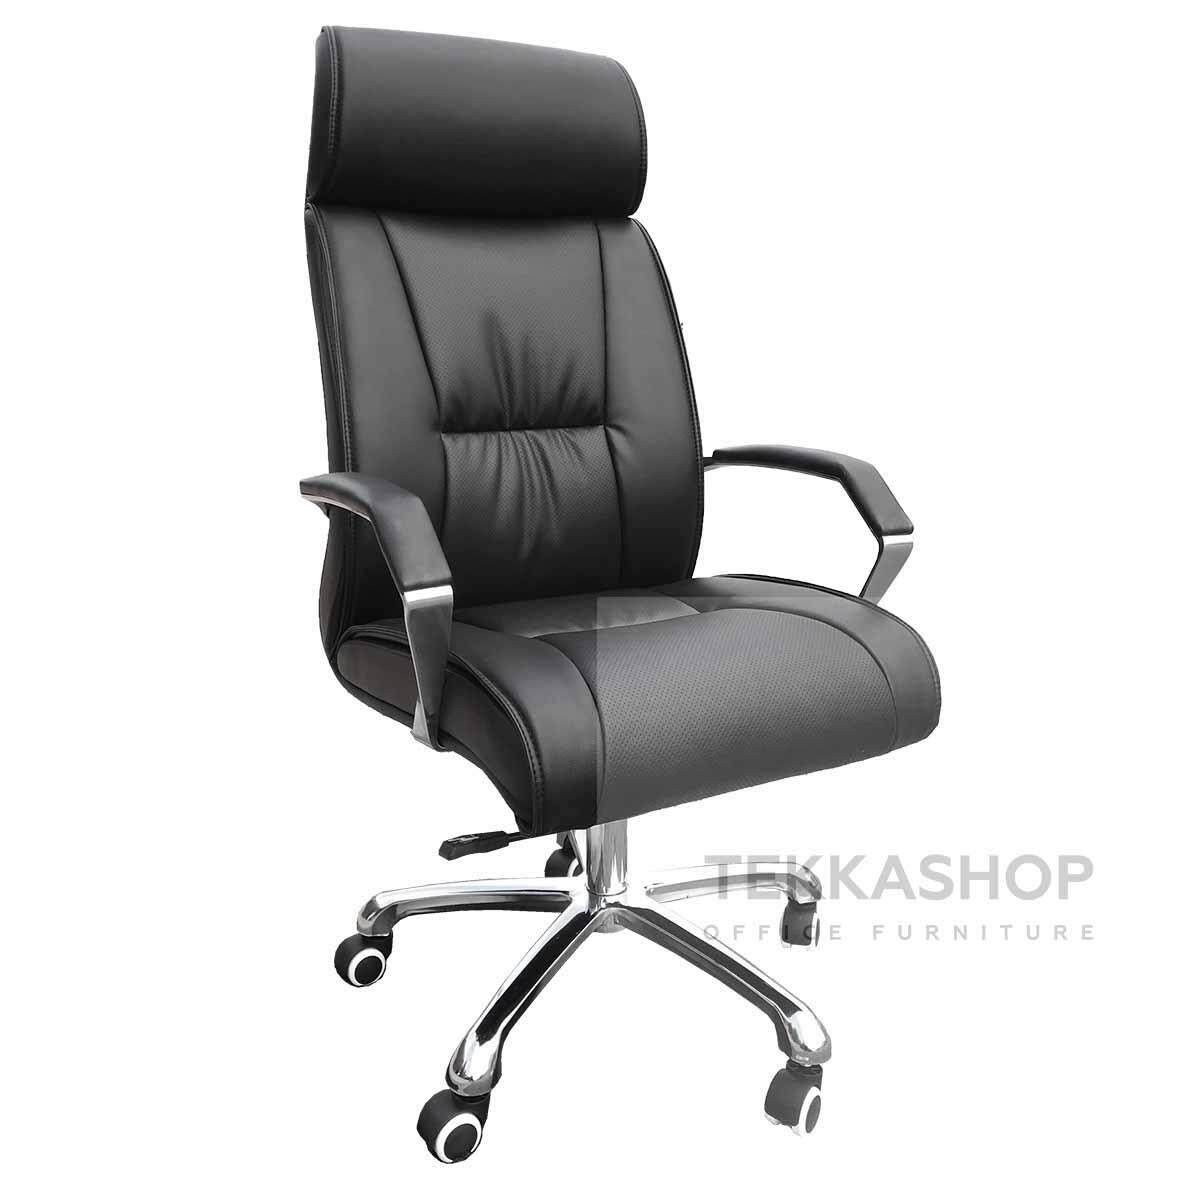 Tekkashop KKMOC2015A Adjustable Seat Height Ergonomic High Back Swivel Mesh Comfort Home Office PU Leather Office Chair, black